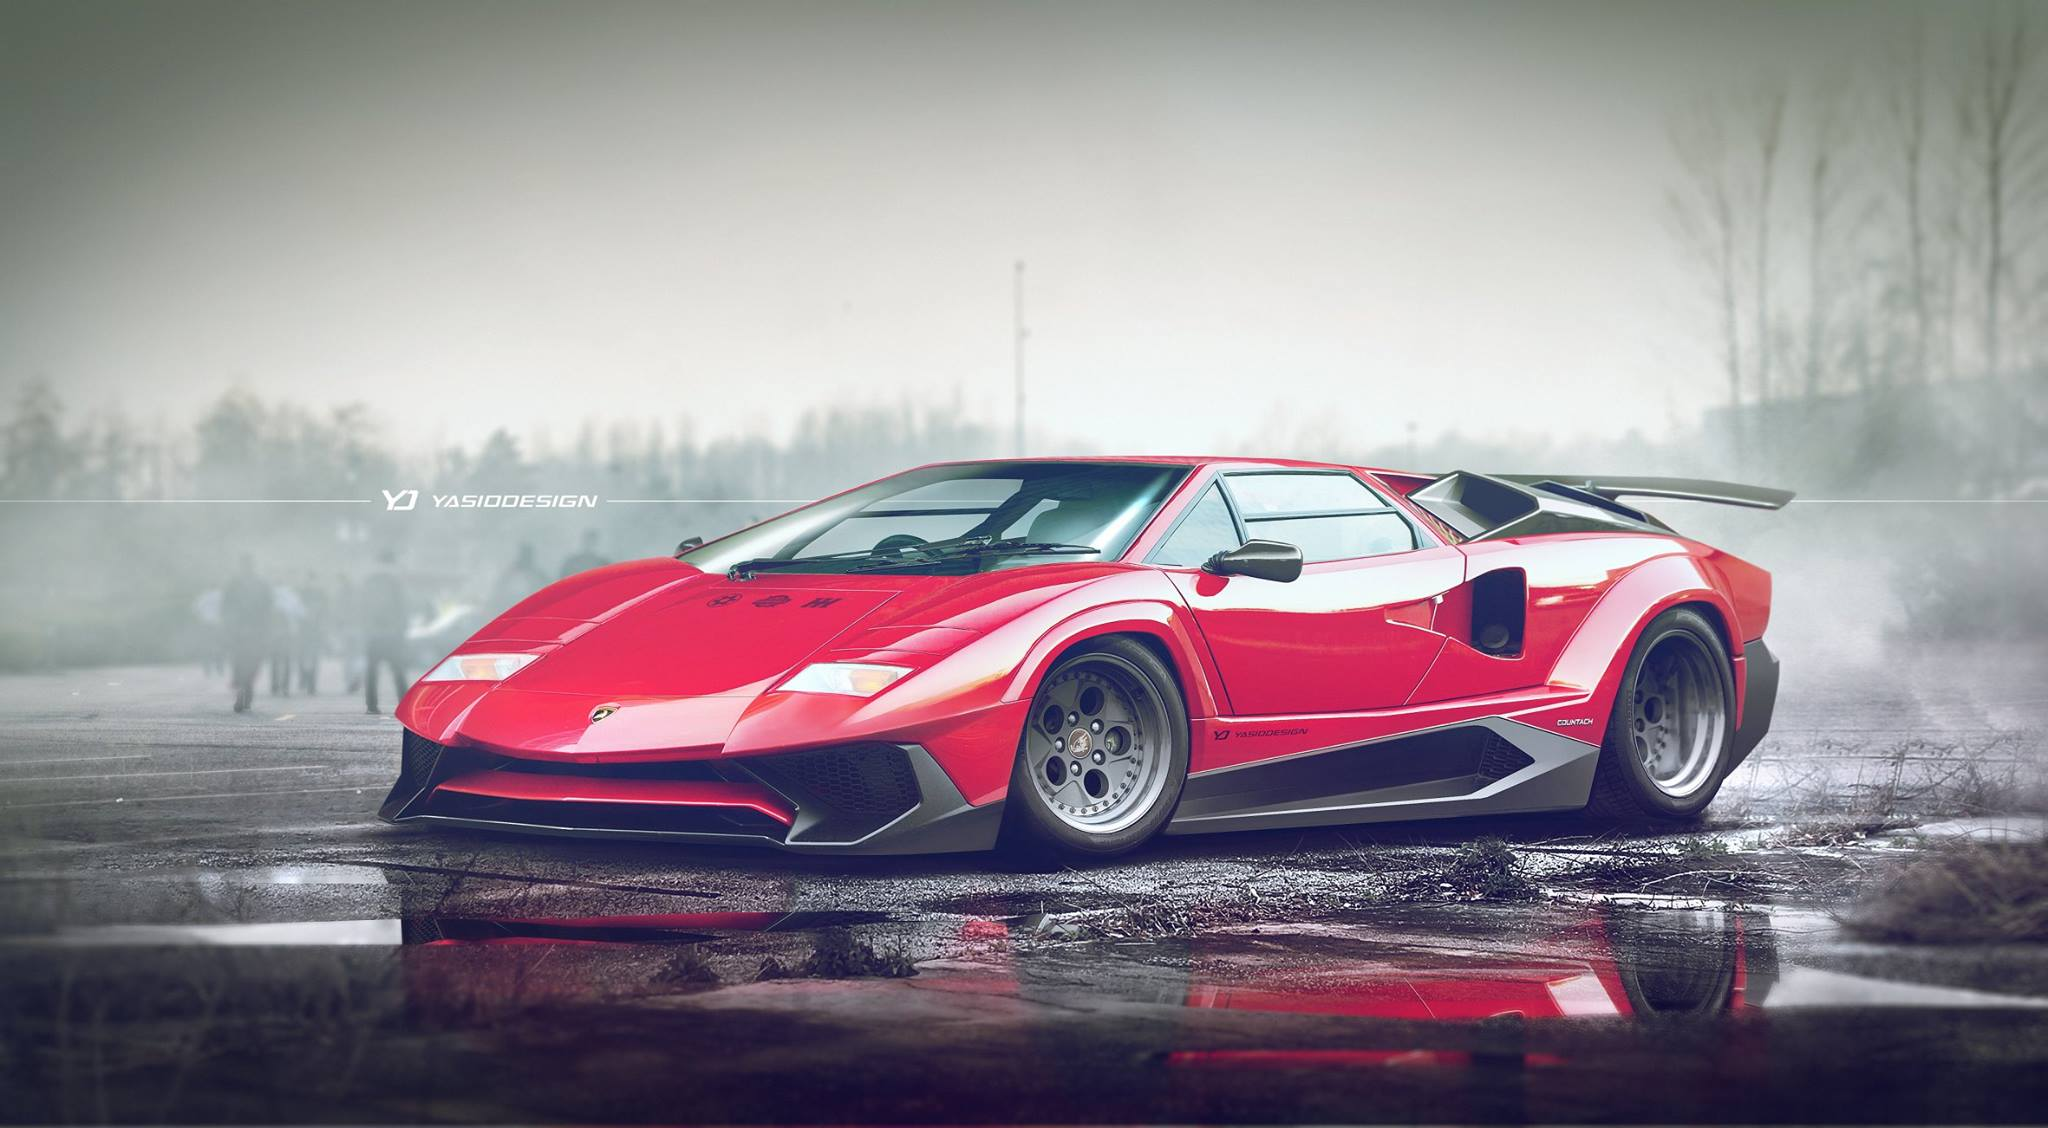 Lamborghini Countach Gets Aventador Sv Makeover In Mind Blowing Mashup on lamborghini miura roadster